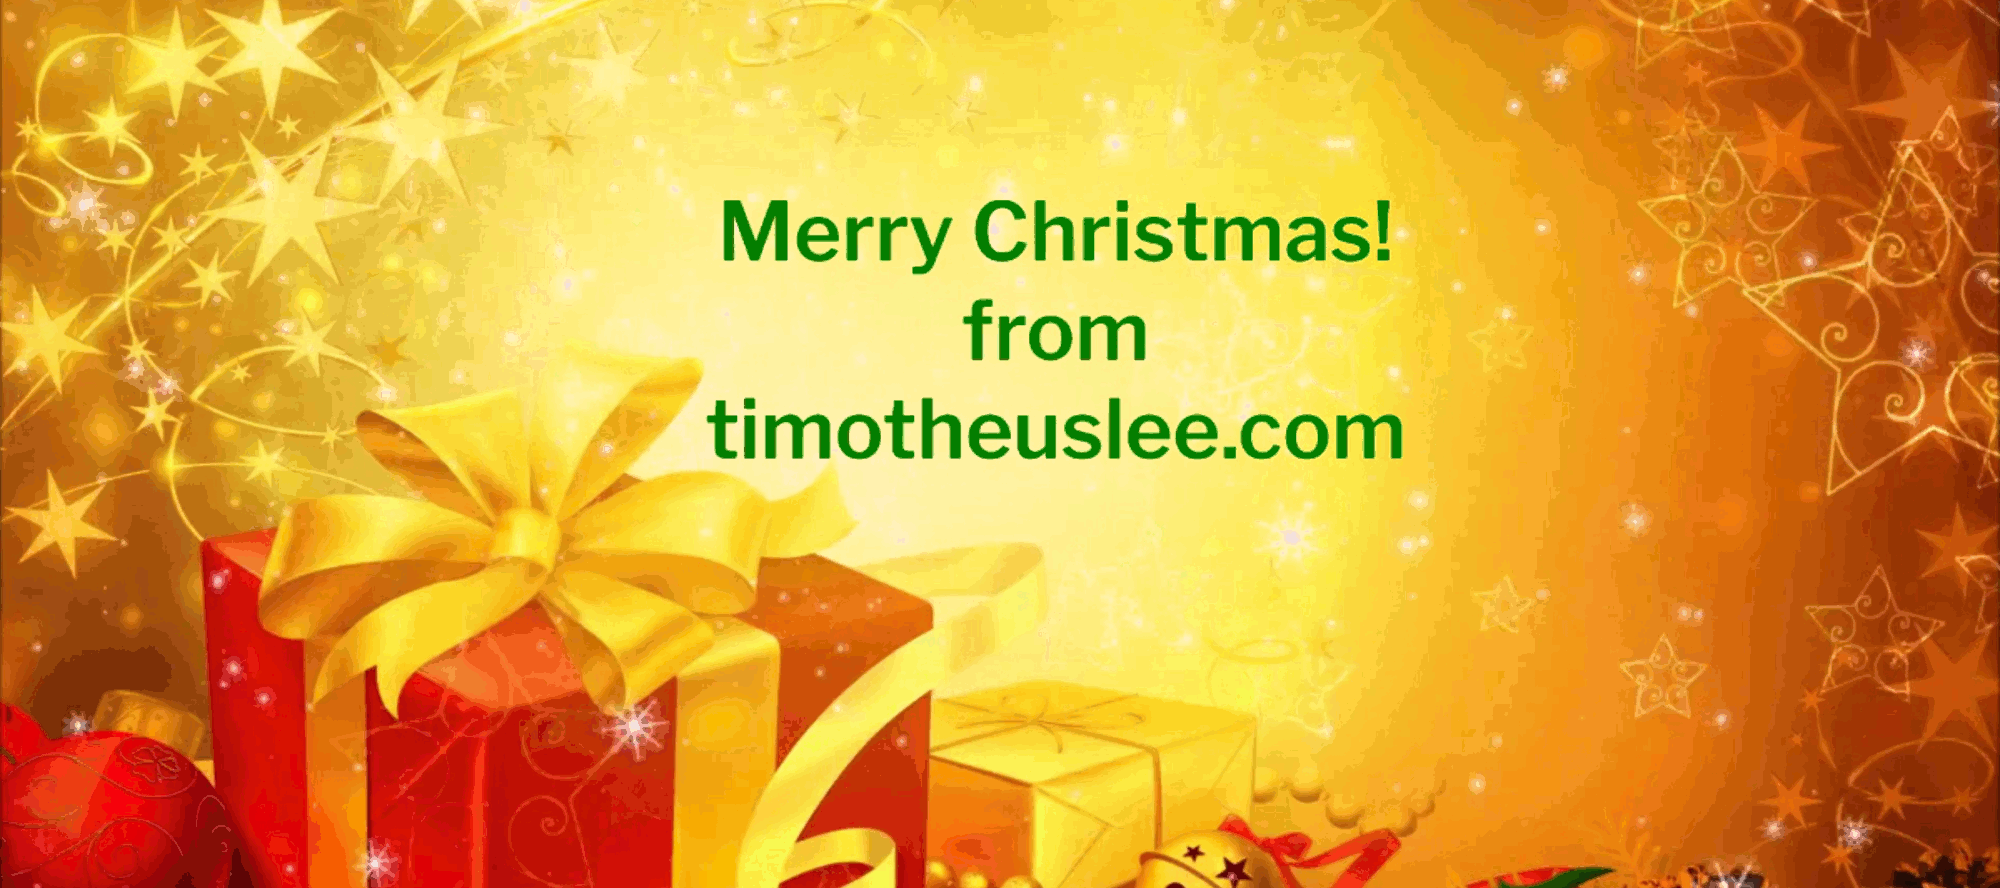 Digital Marketing Consultant Singapore Wishes Everyone Merry Christmas header